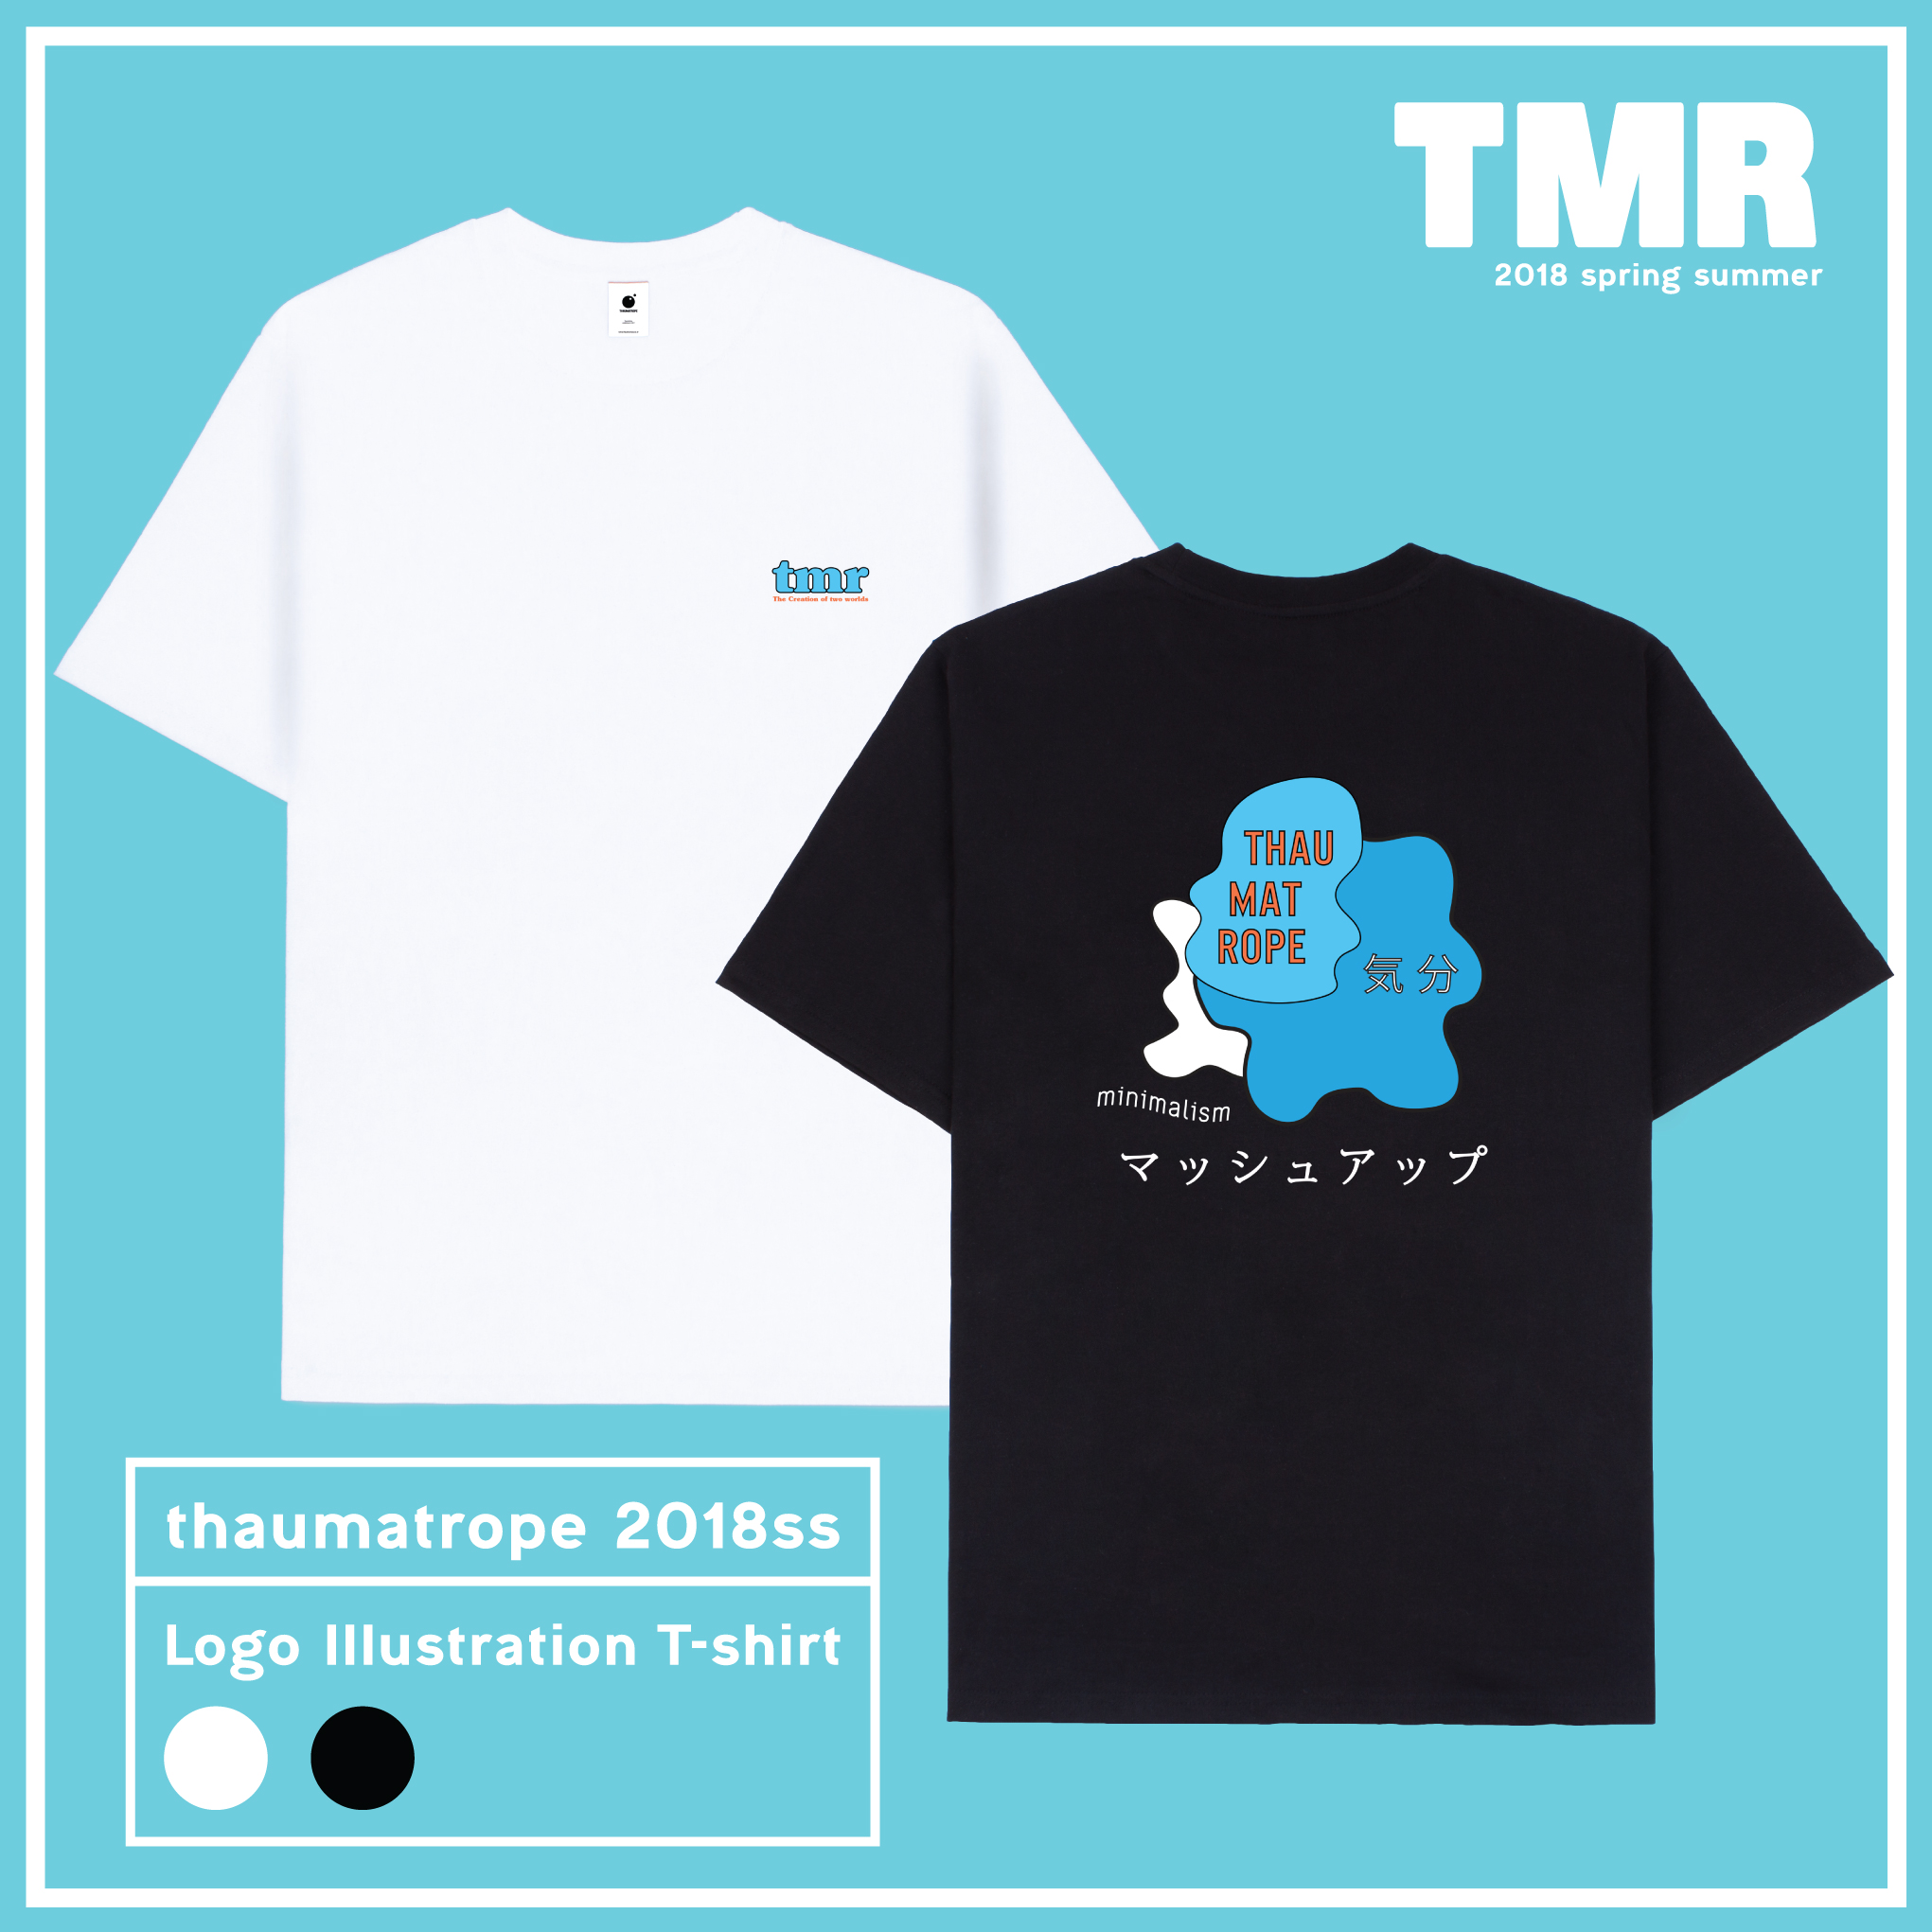 TMR LOGO ILLUSTRATION T-SHIRTS